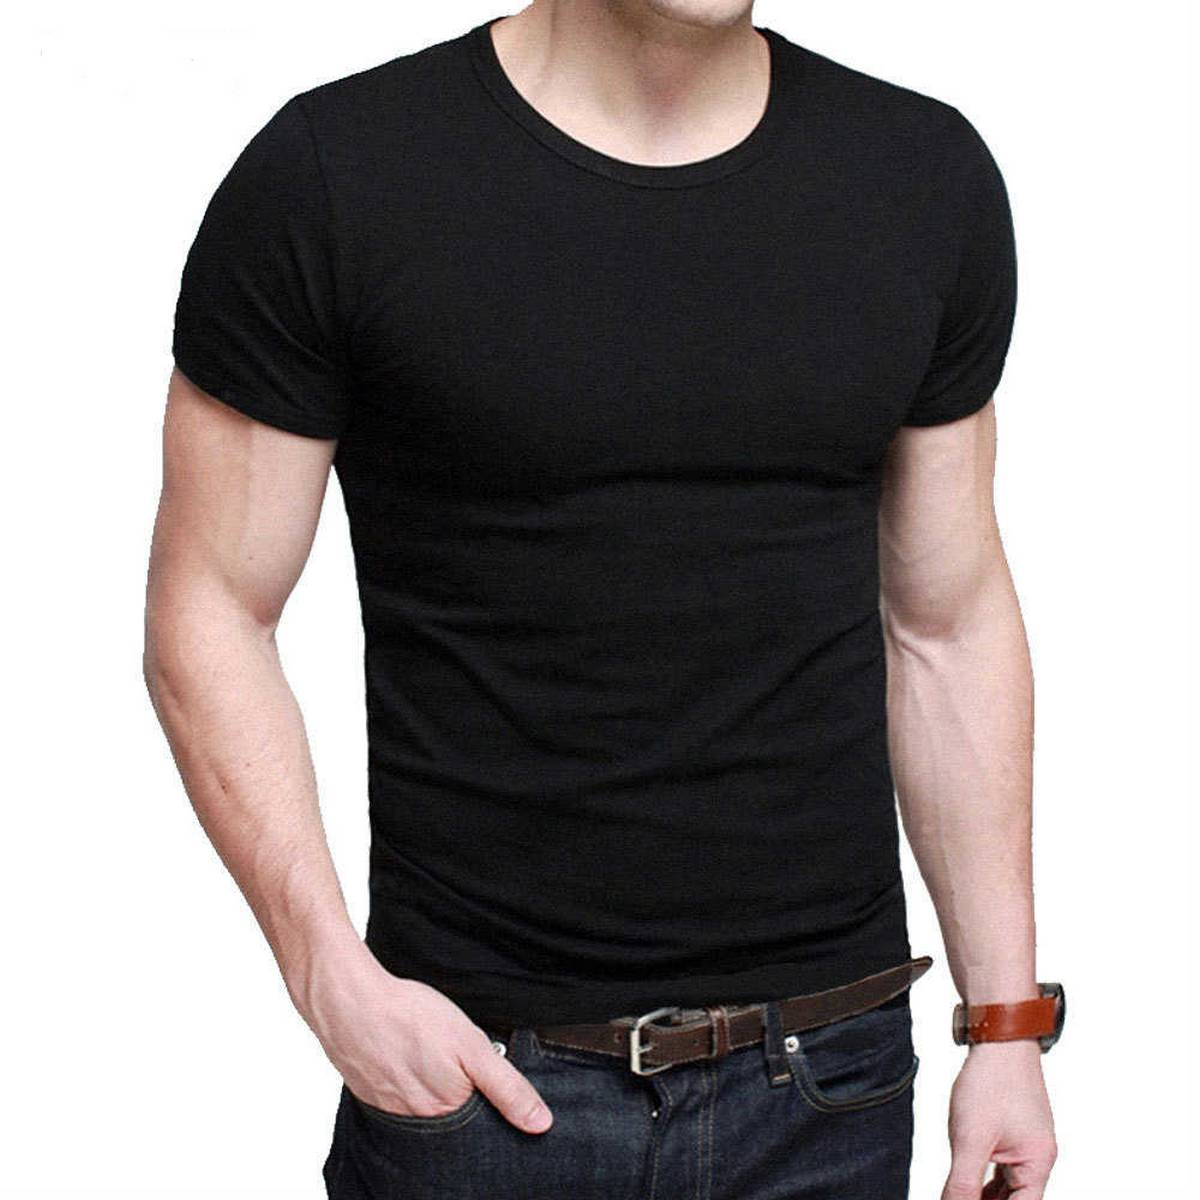 O-Neck Short Sleeve Shirts Round Neck Shirts for GYM Workout Shirts for Men Casual T-Shirts for Men Stylish Round Neck Best Quality Shirts for Men